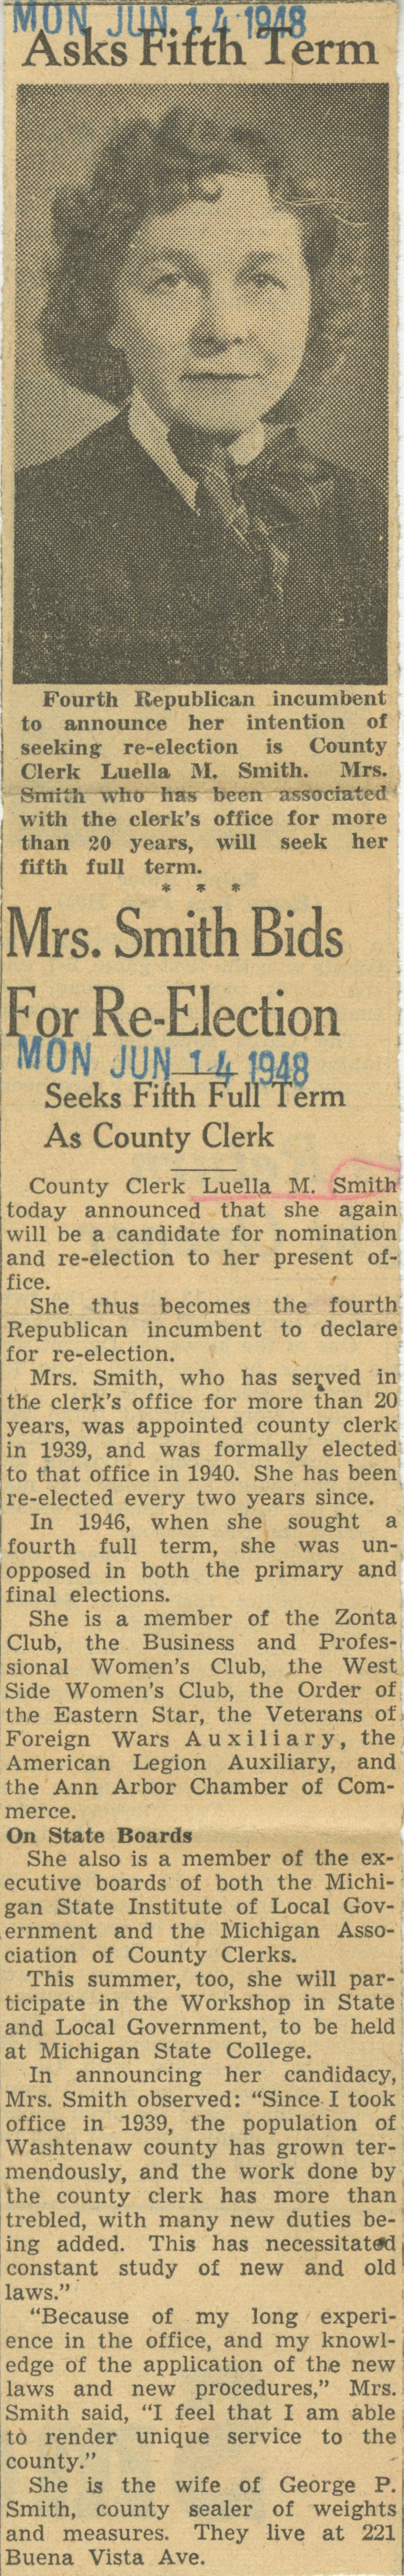 Mrs. Smith Bids For Re-Election image